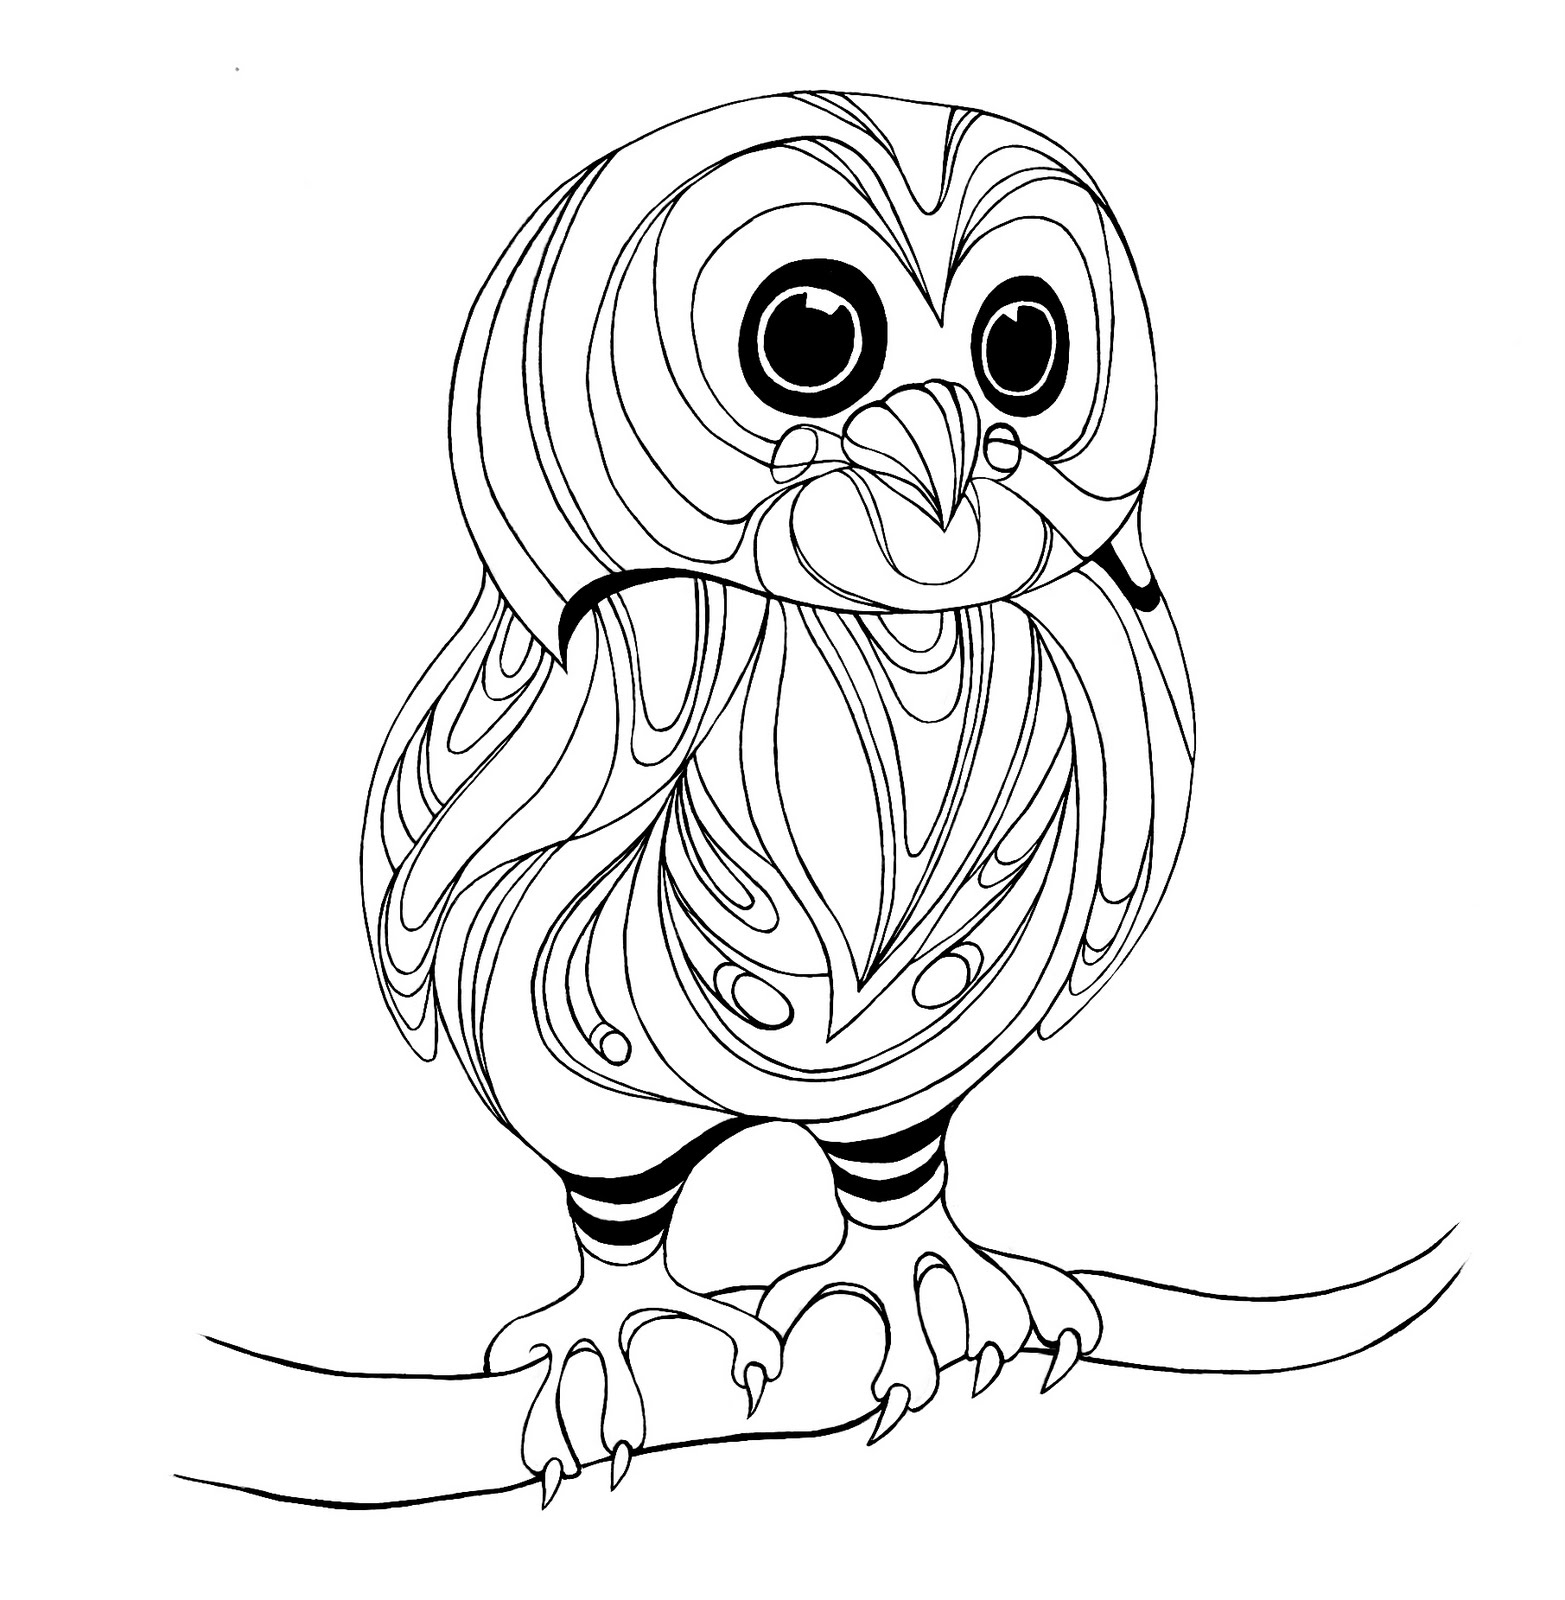 coloring owl pictures to colour free printable owl coloring pages for kids cool2bkids to colour pictures coloring owl